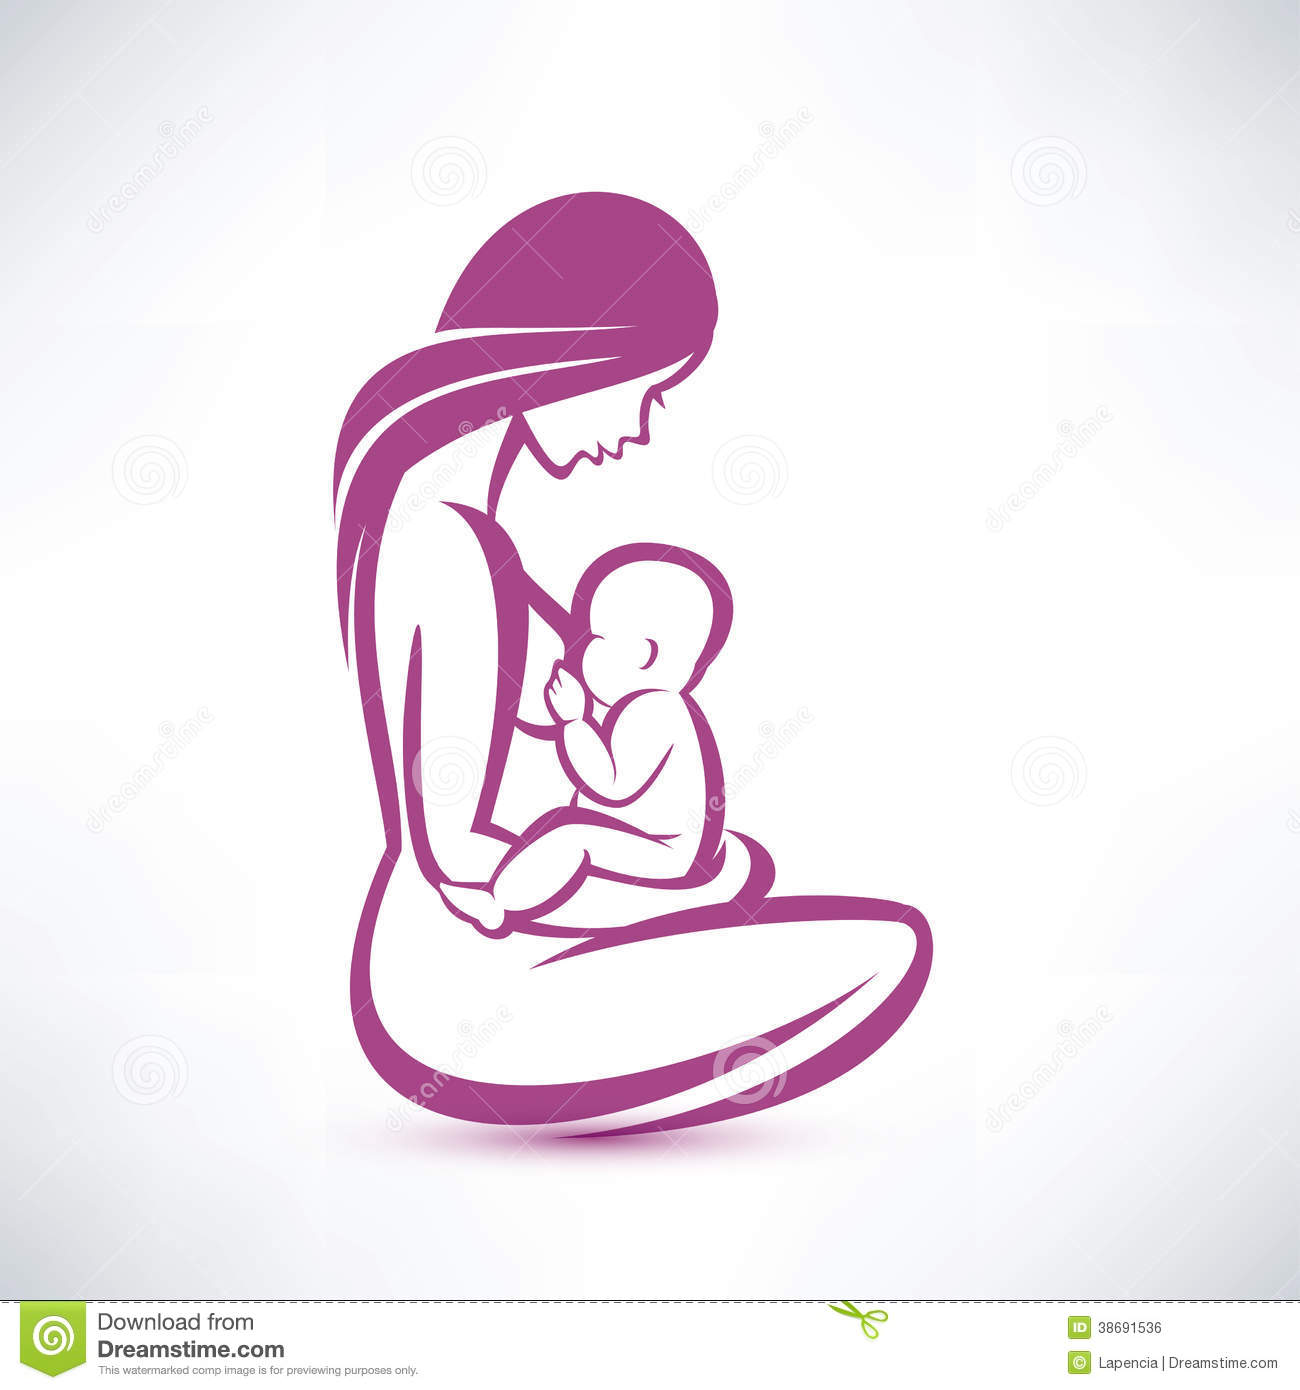 Image result for breast feeding child cartoon images